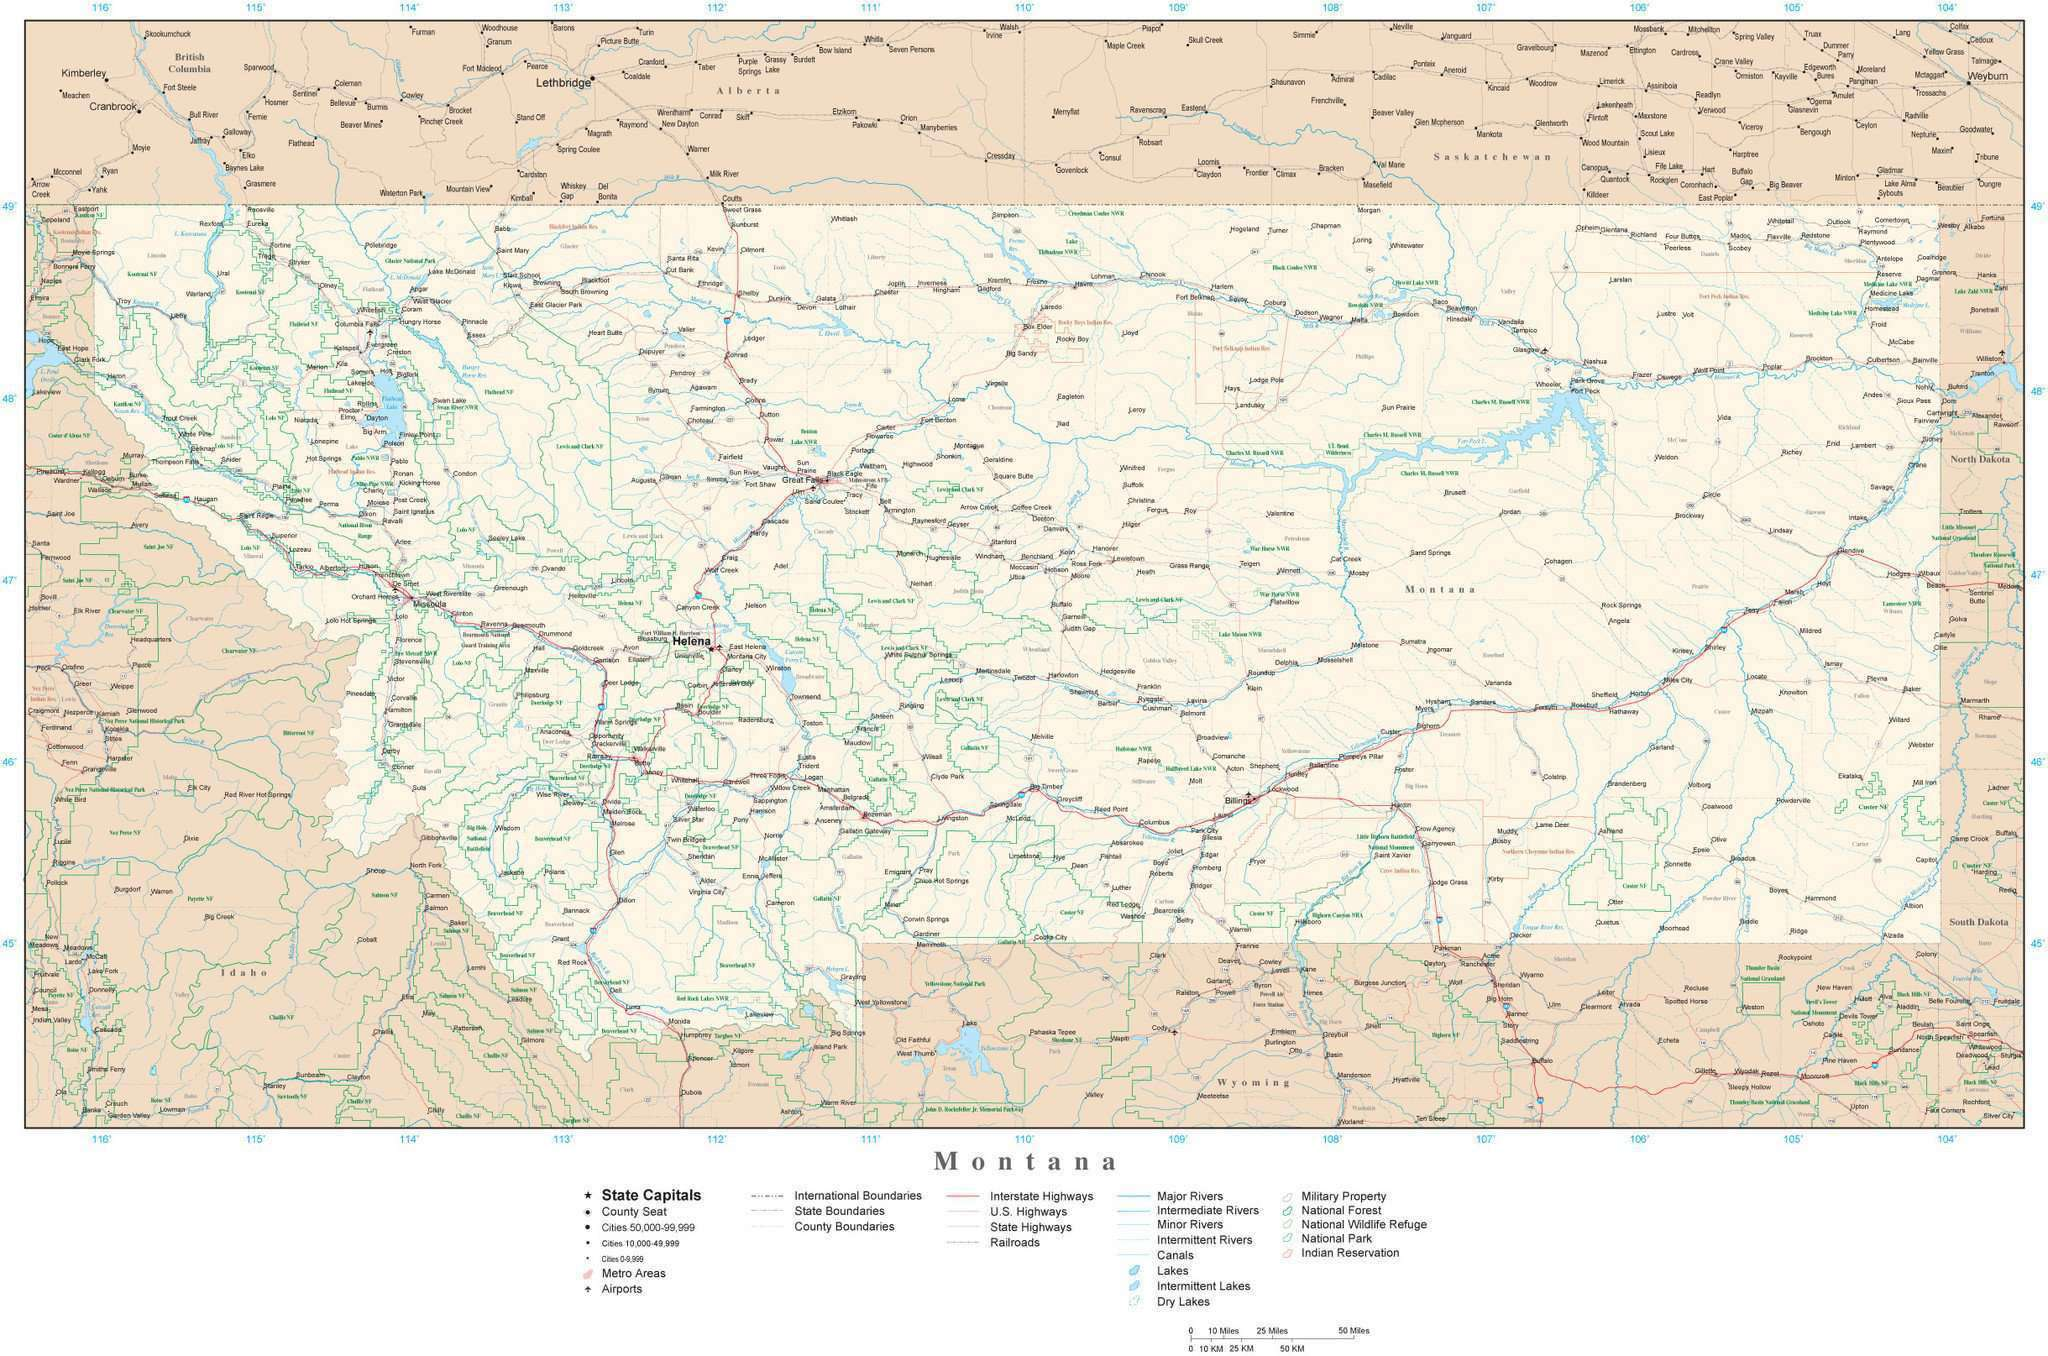 Detailed Montana Digital Map with County Boundaries, Cities, Highways,  National Parks, and more